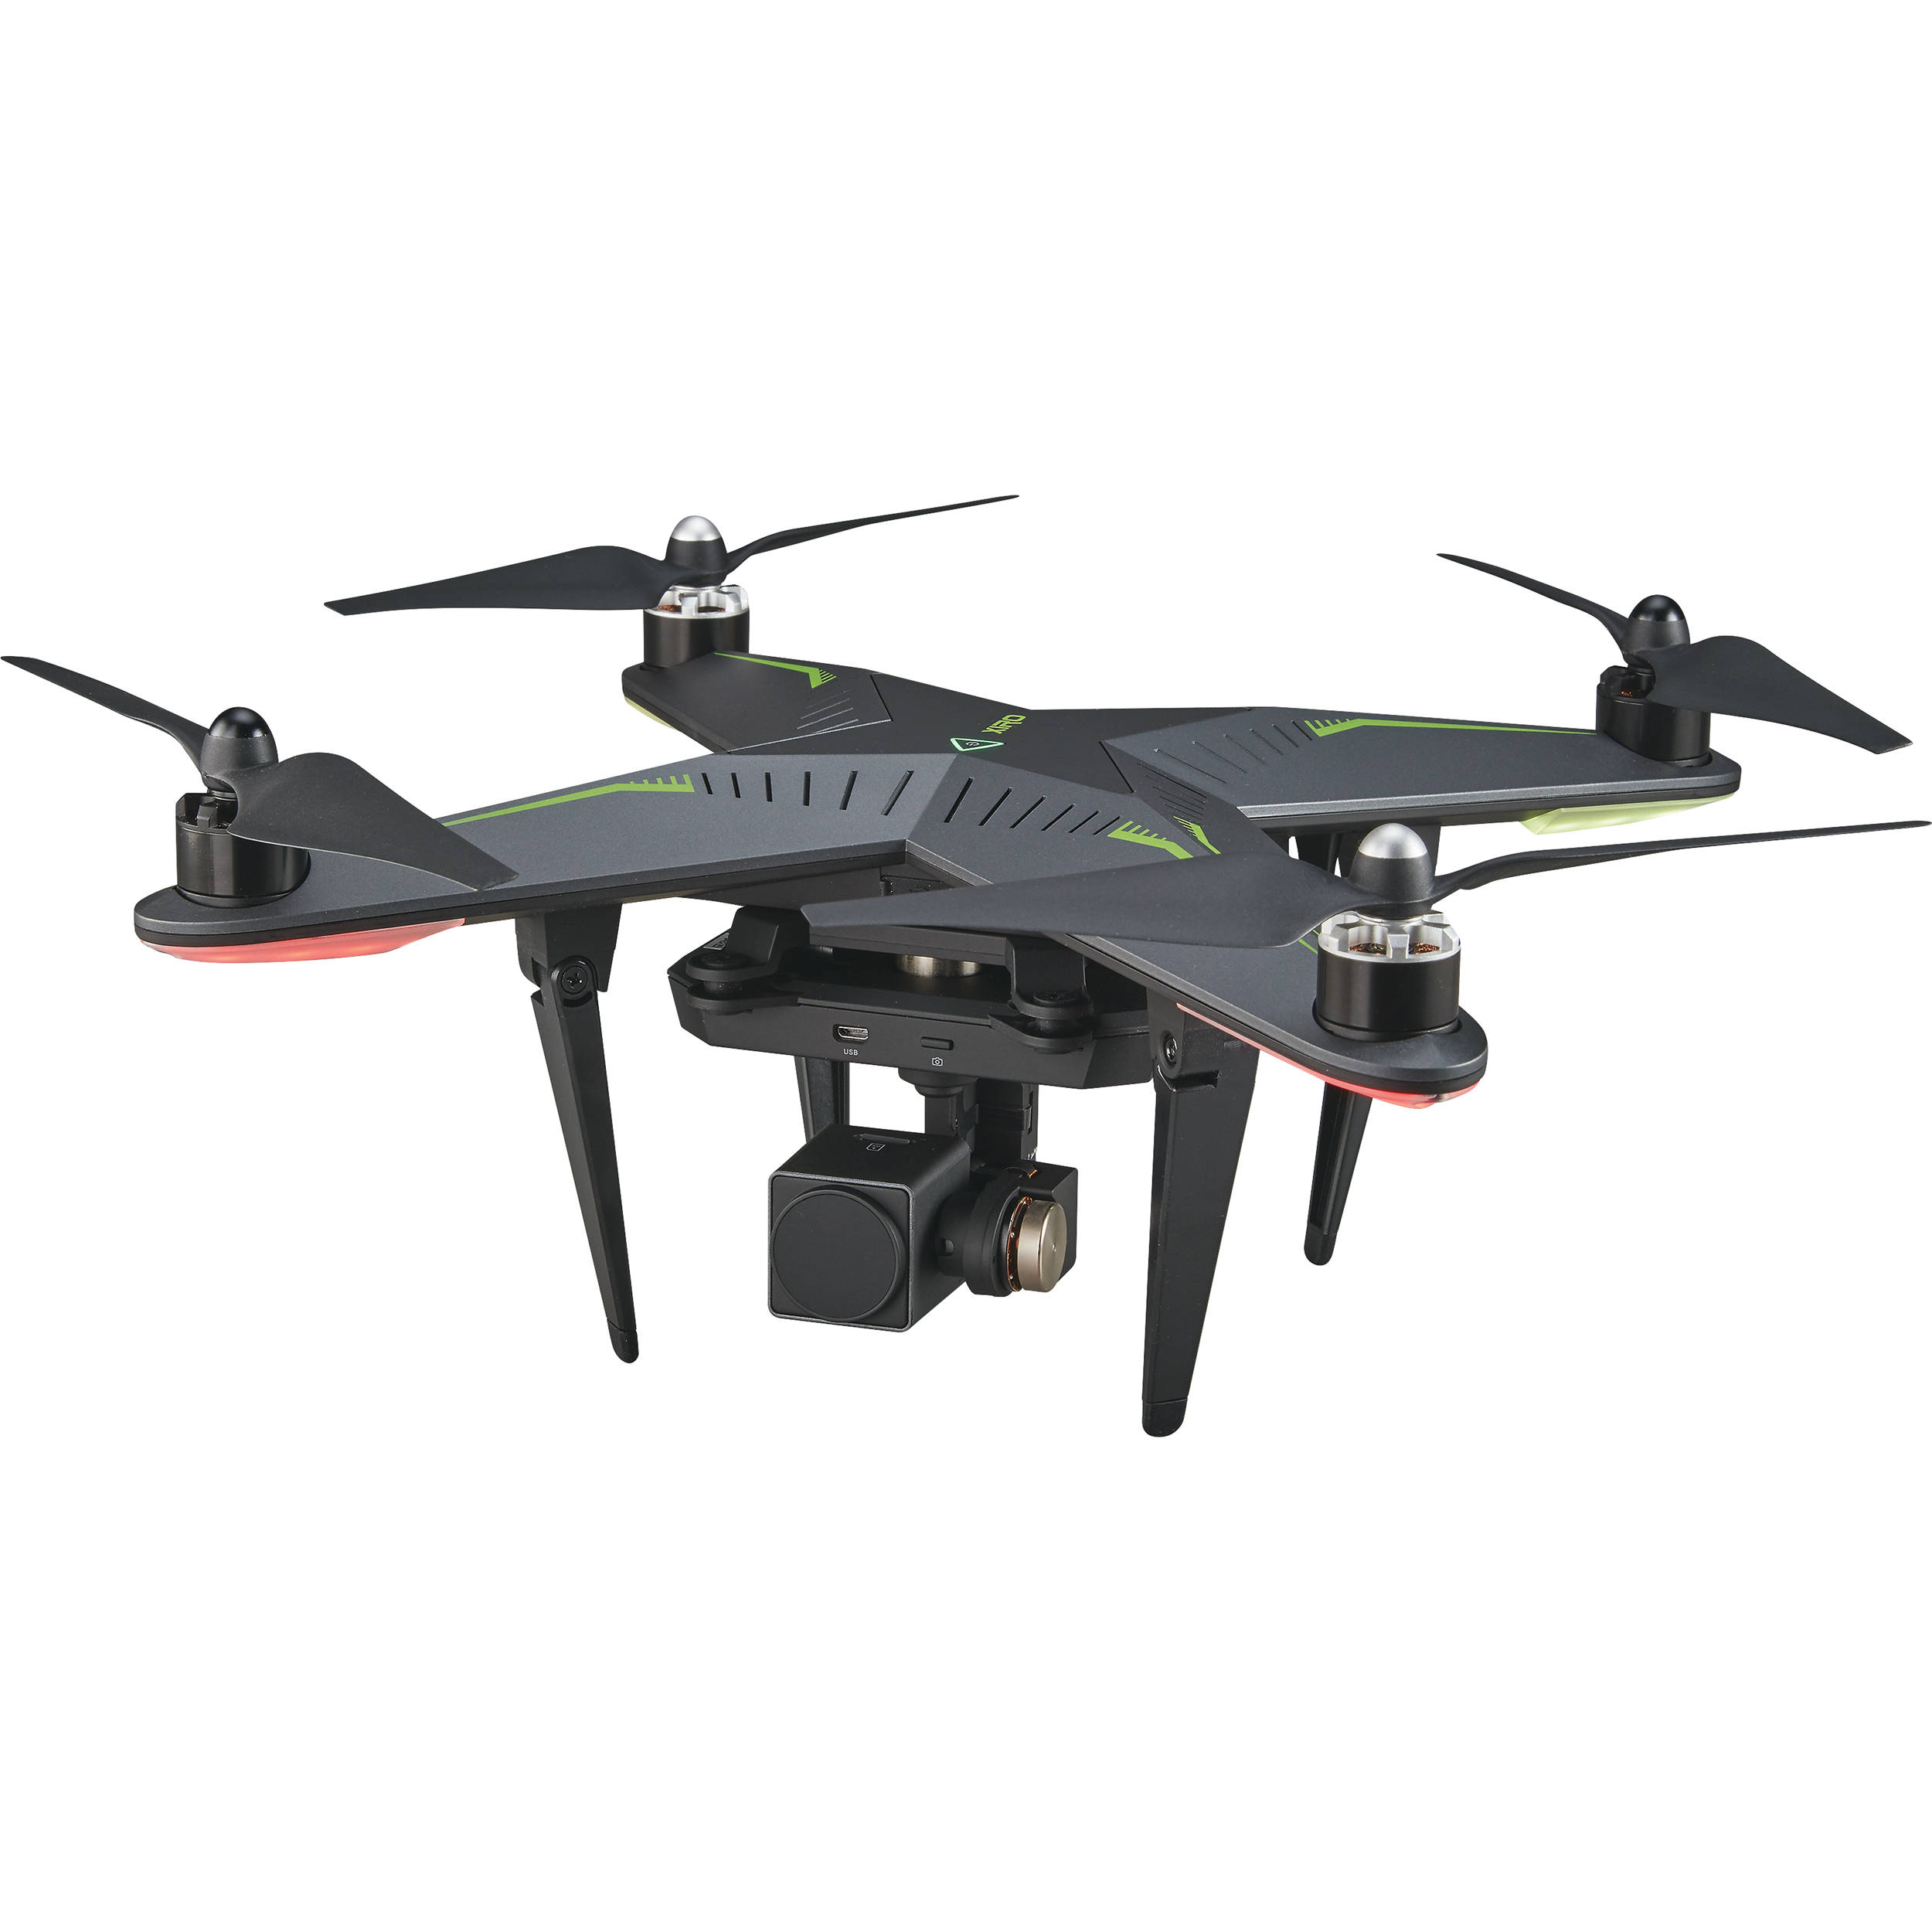 Xiro Xplorer V Model Quadcopter With HD Camera And 3 Axis